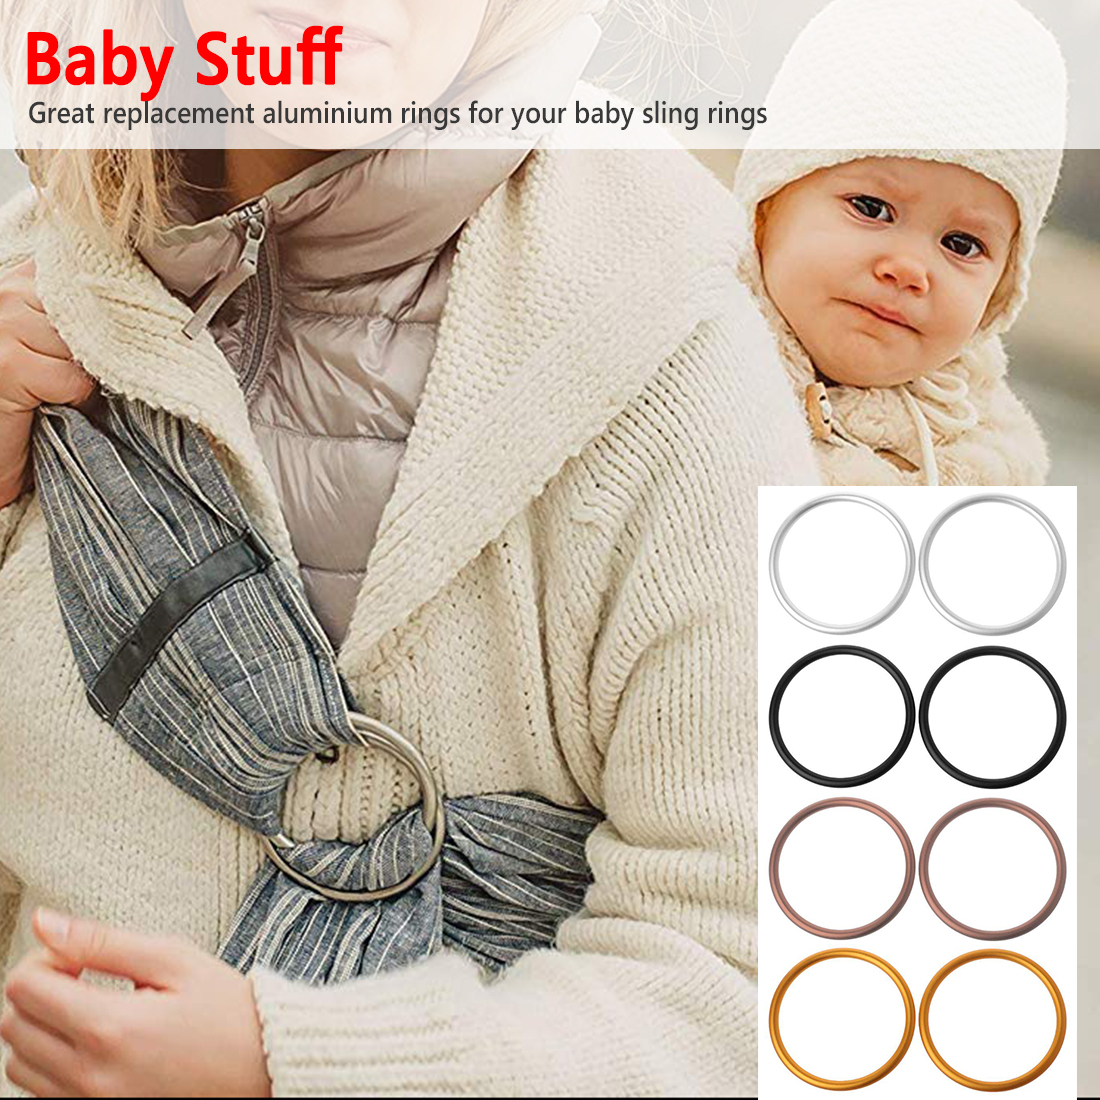 Premium Aluminum Rings For Baby Slings Baby Carriers Accessories 4Colors For Baby Carriers & Slings 2 2.5 3 Inches